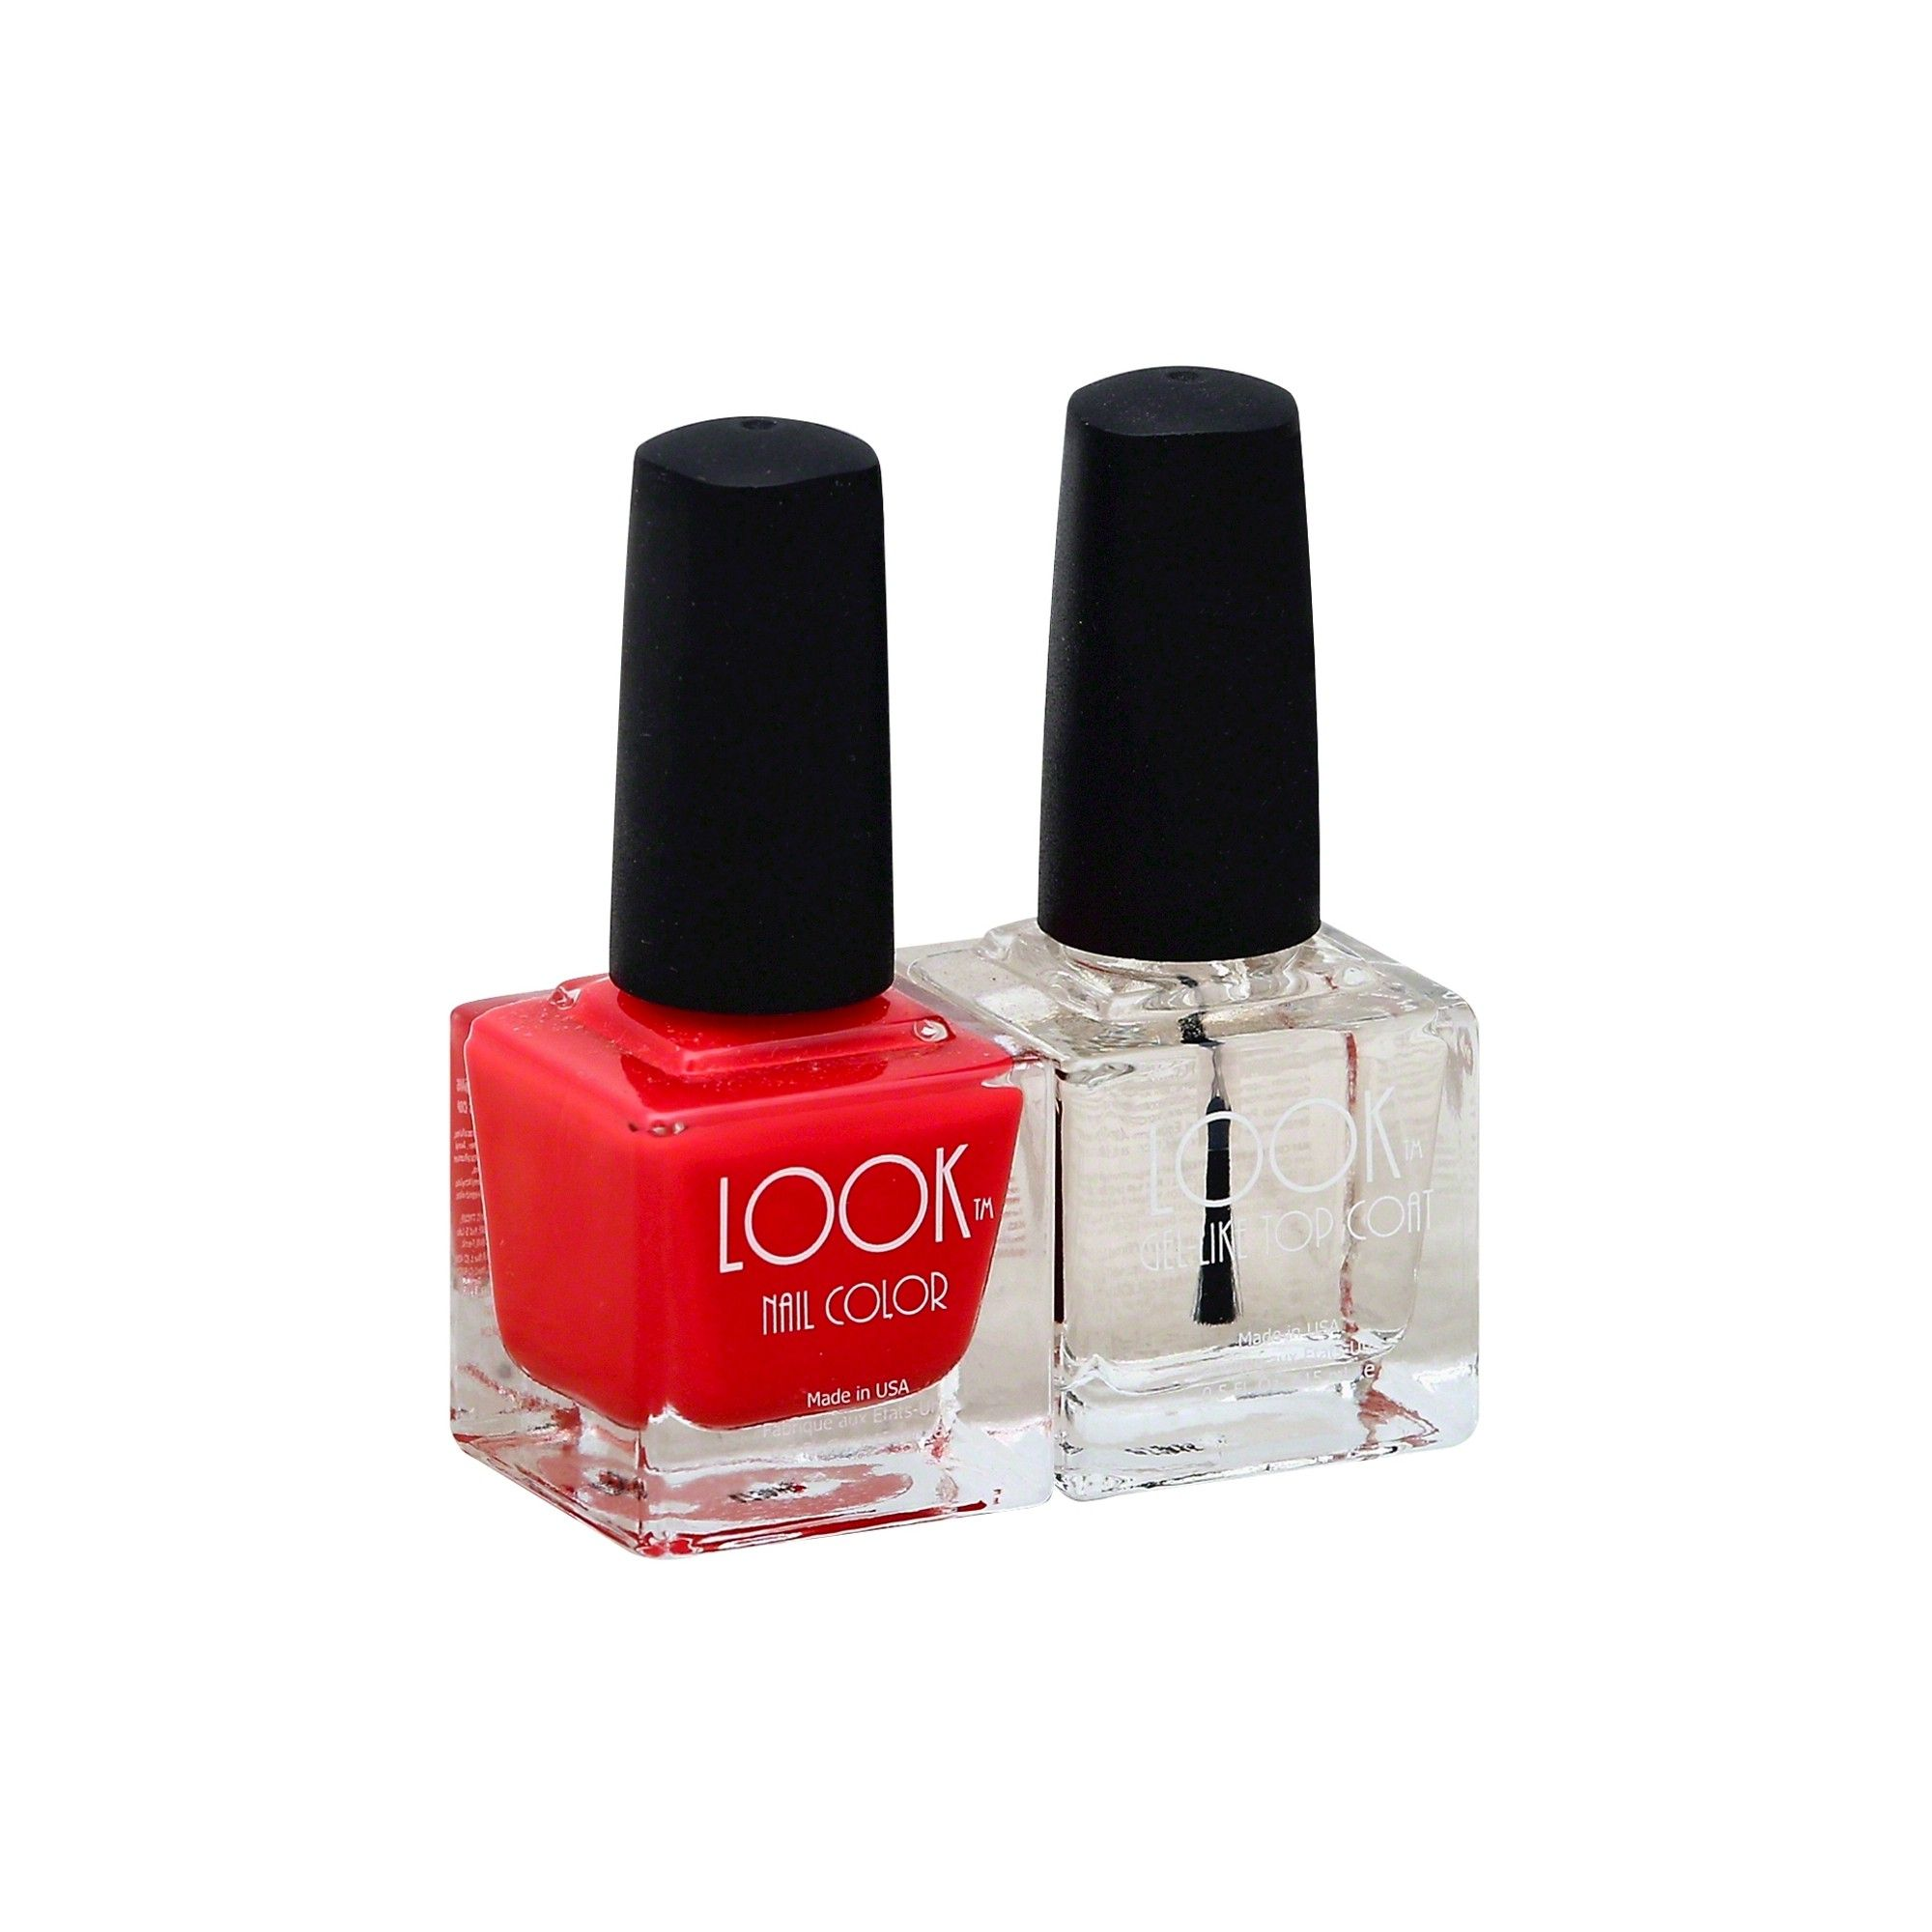 Look Nail Color Cruelty Free & Vegan Nail Polish Set